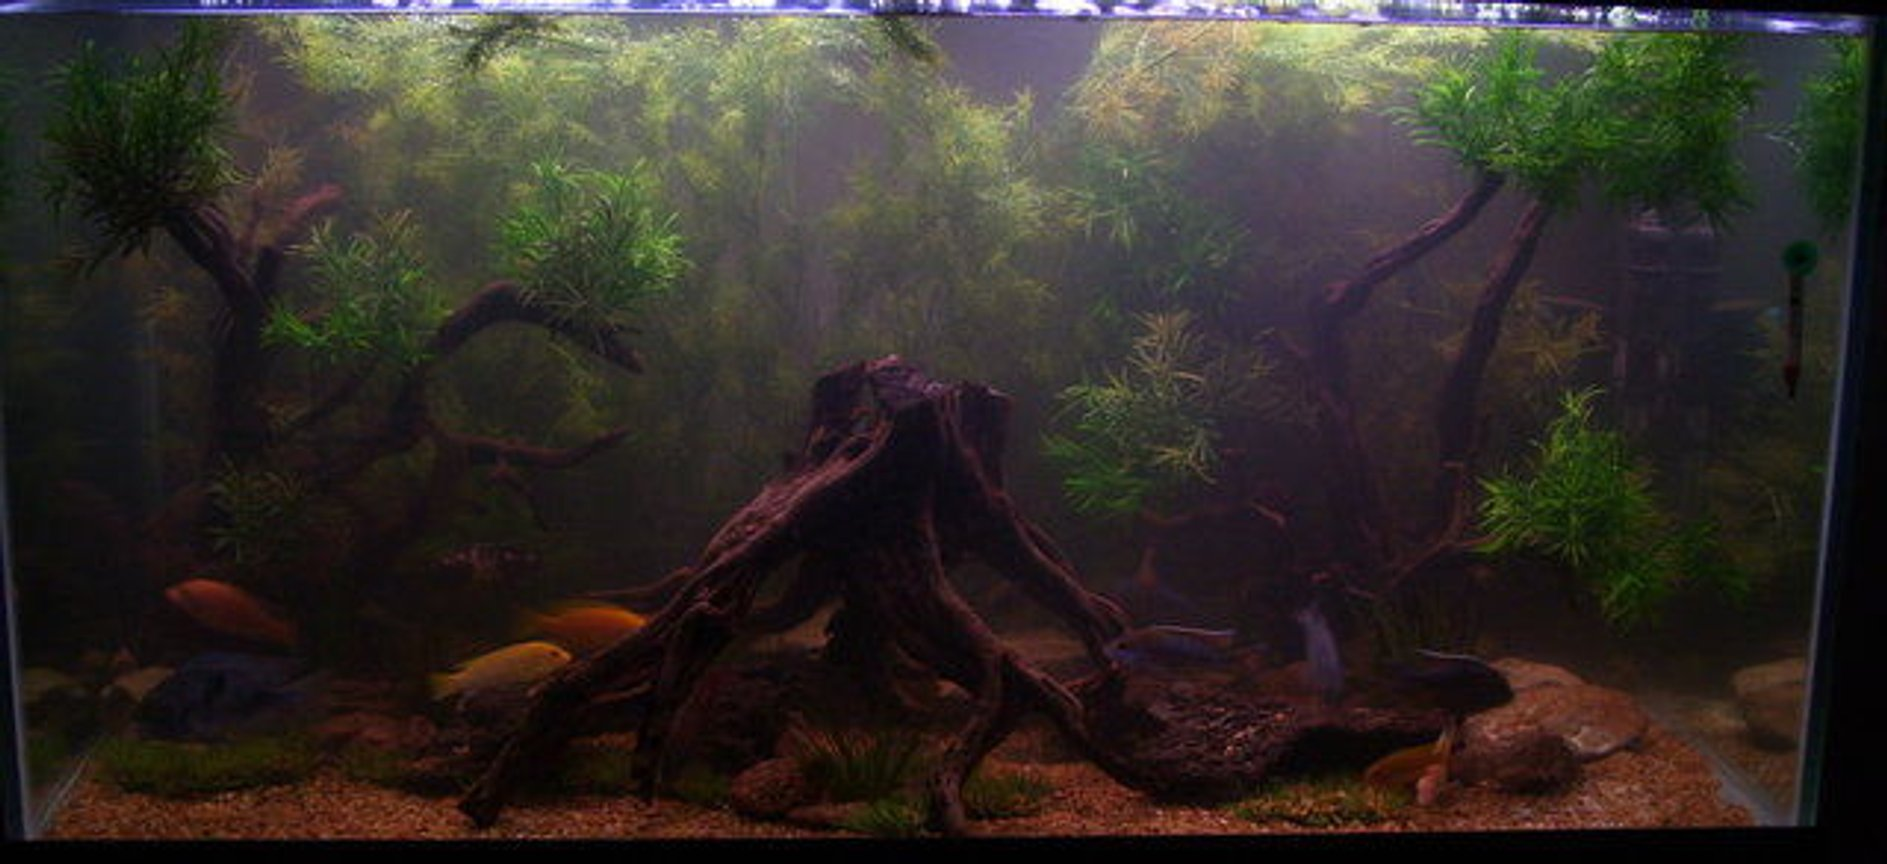 120 gallons freshwater fish tank (mostly fish and non-living decorations) - My New 120gal